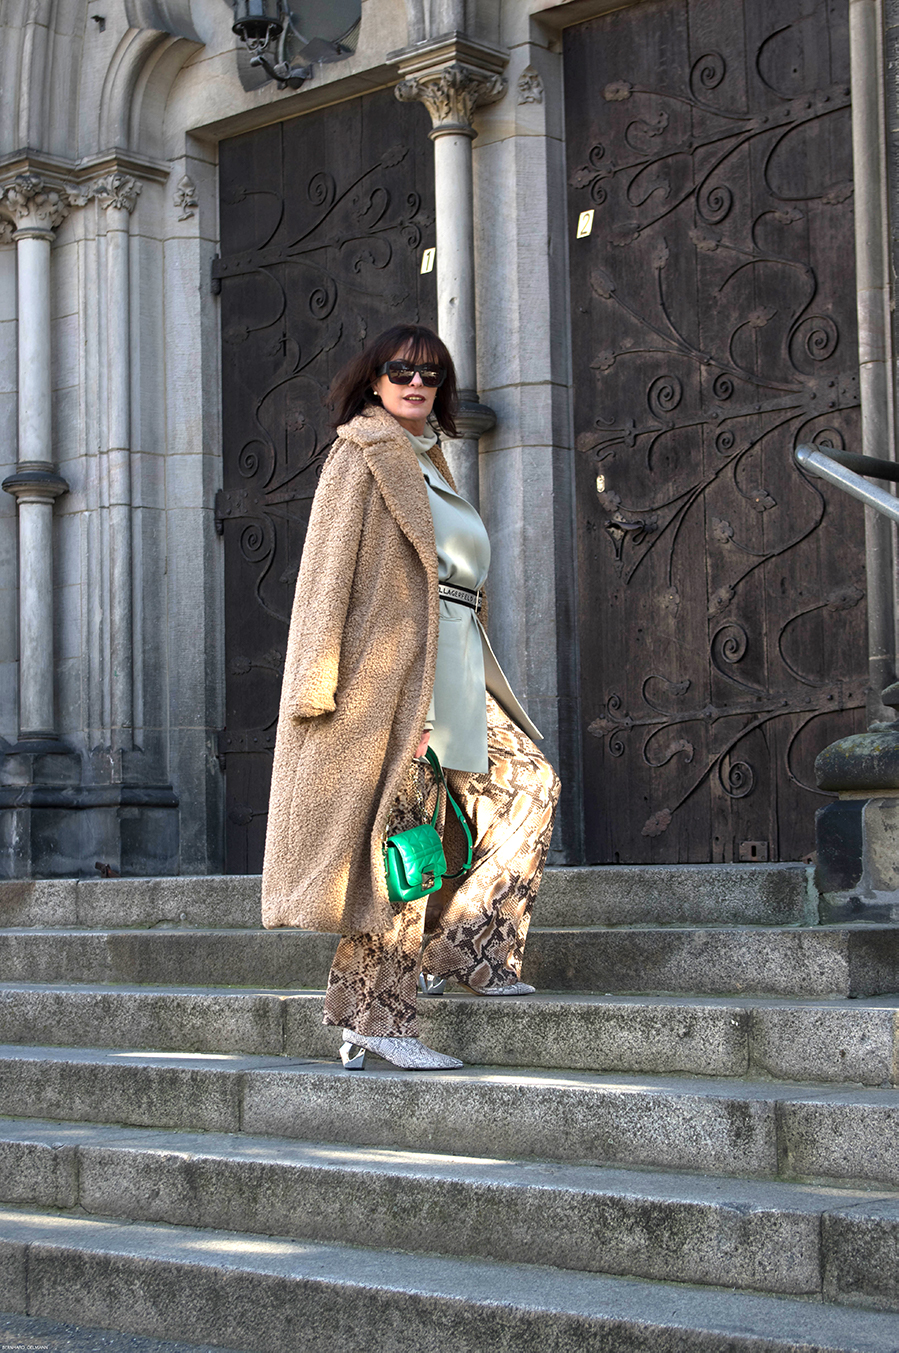 Just-take-a-look Berlin - Karl Lagerfeld - Outfit Frühling 1-29.1